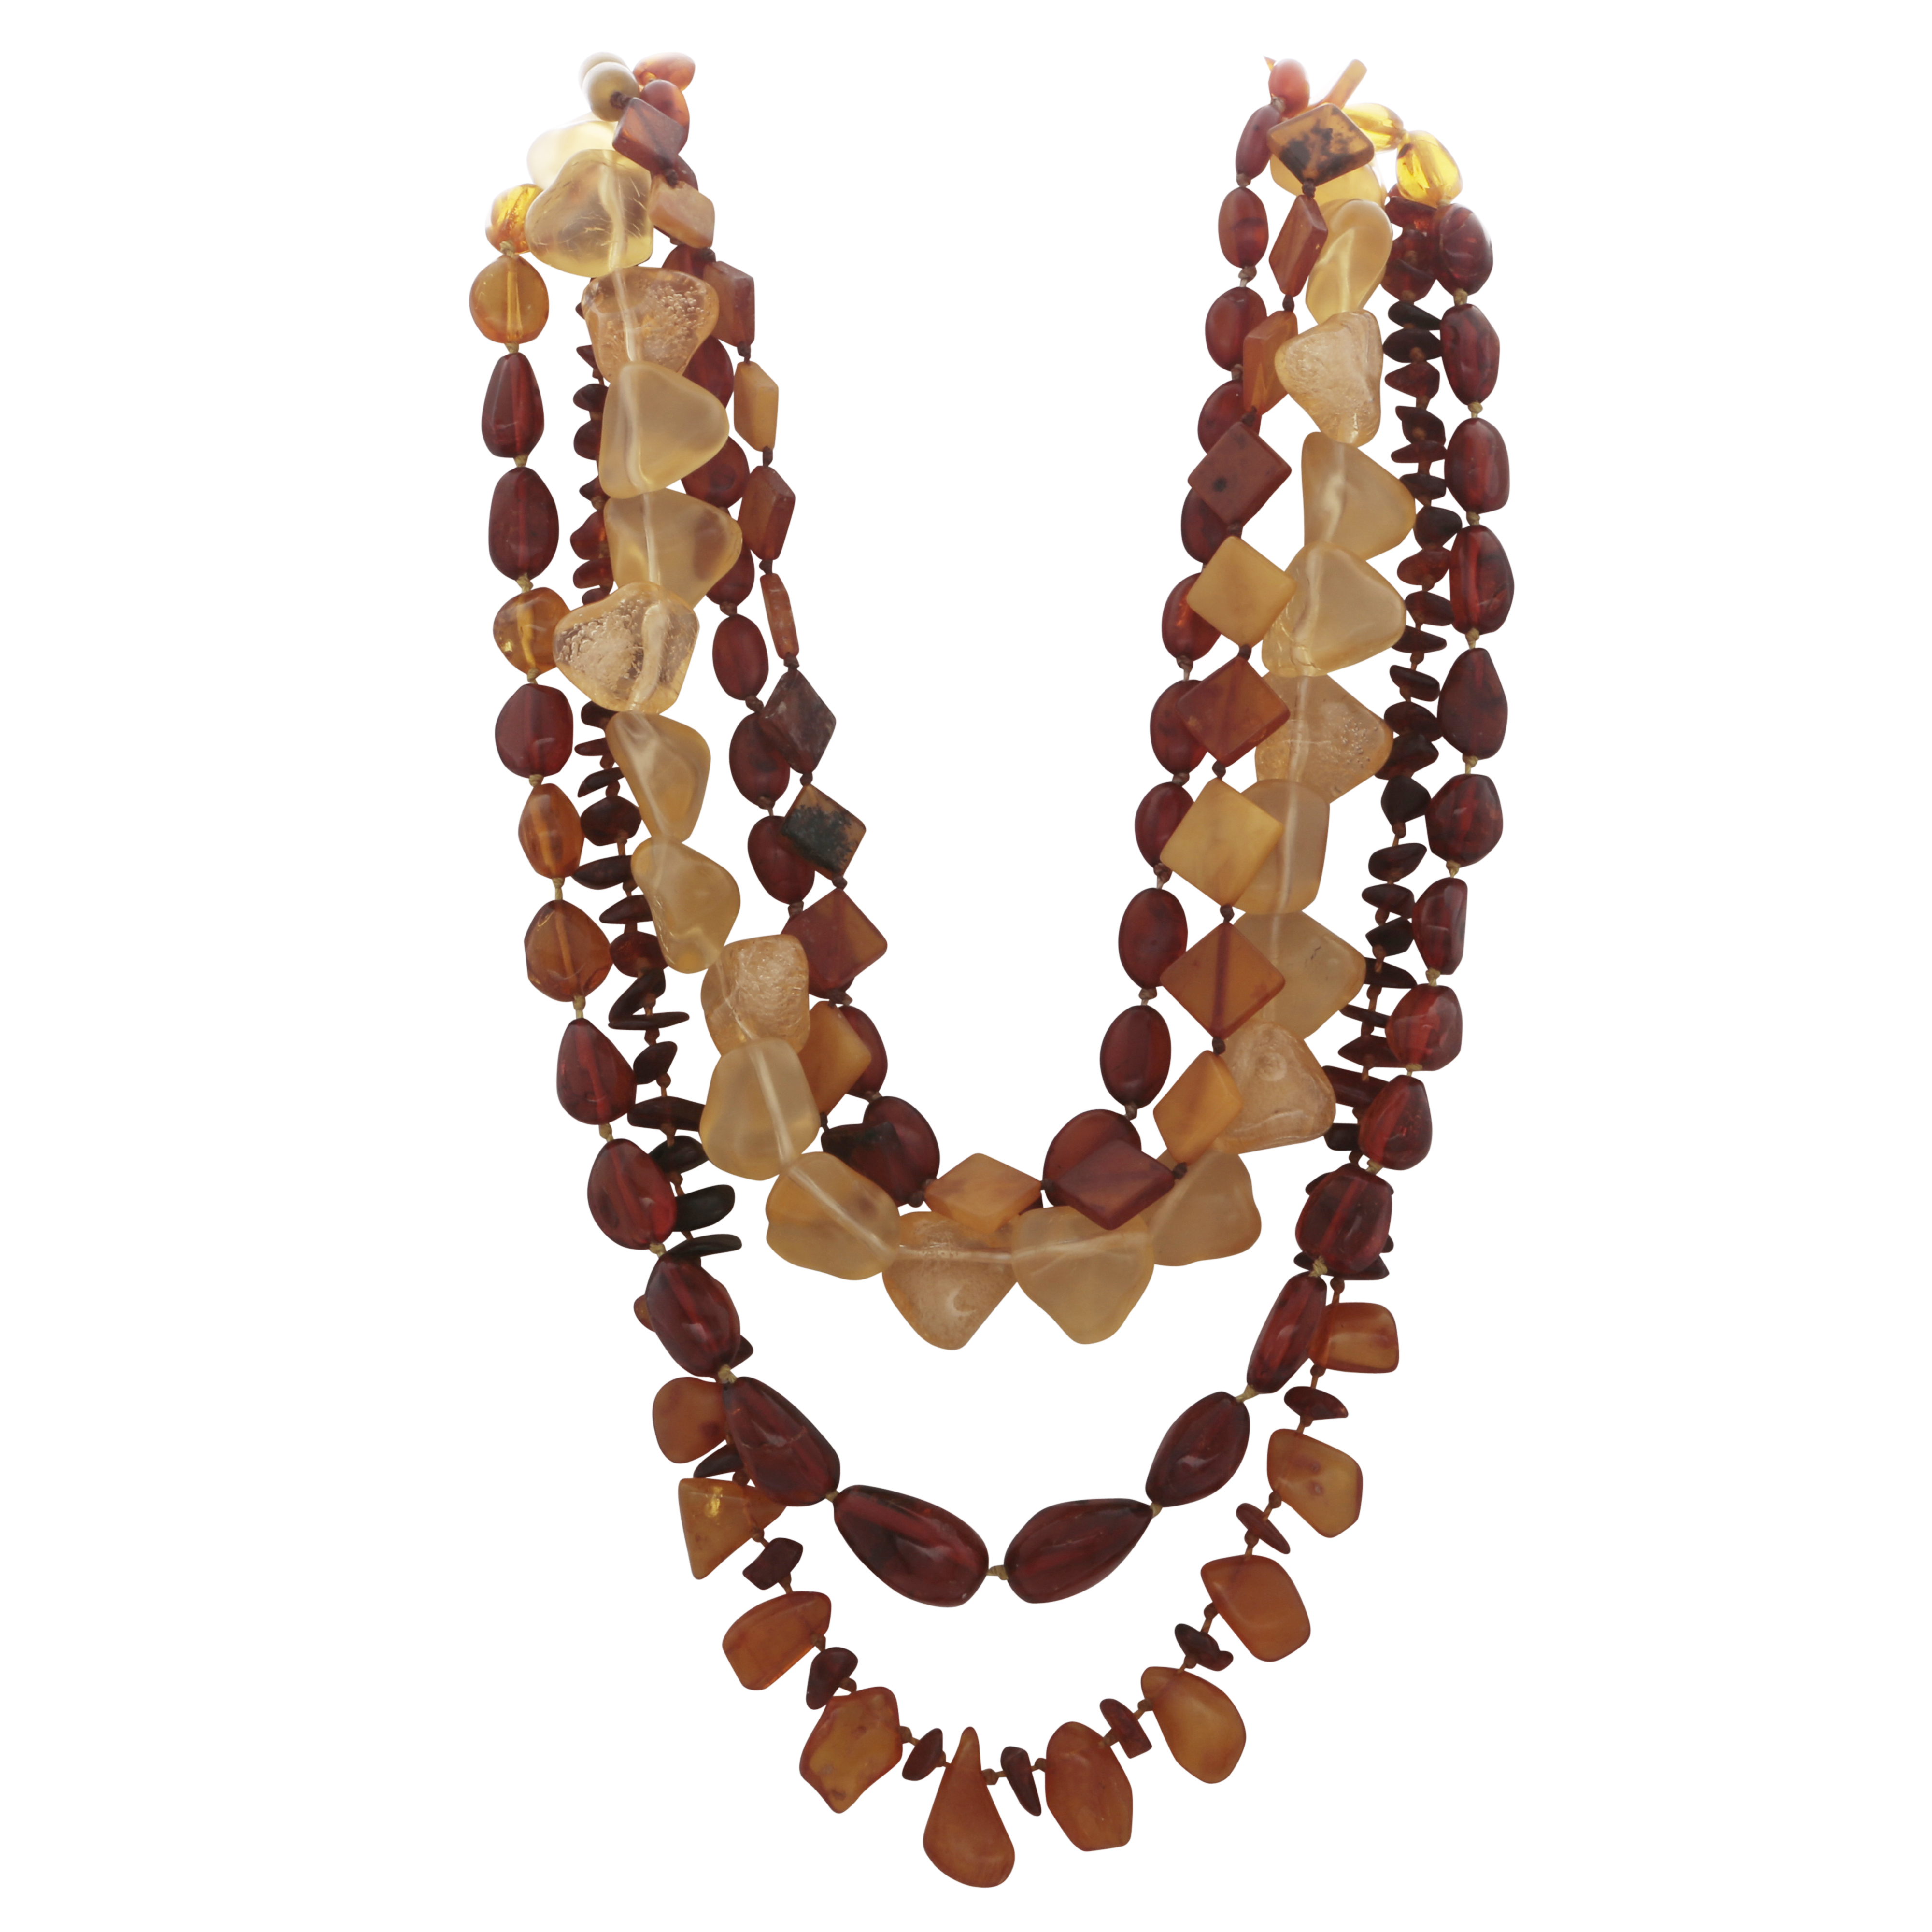 Los 157 - Five amber bead necklaces in varying styles.